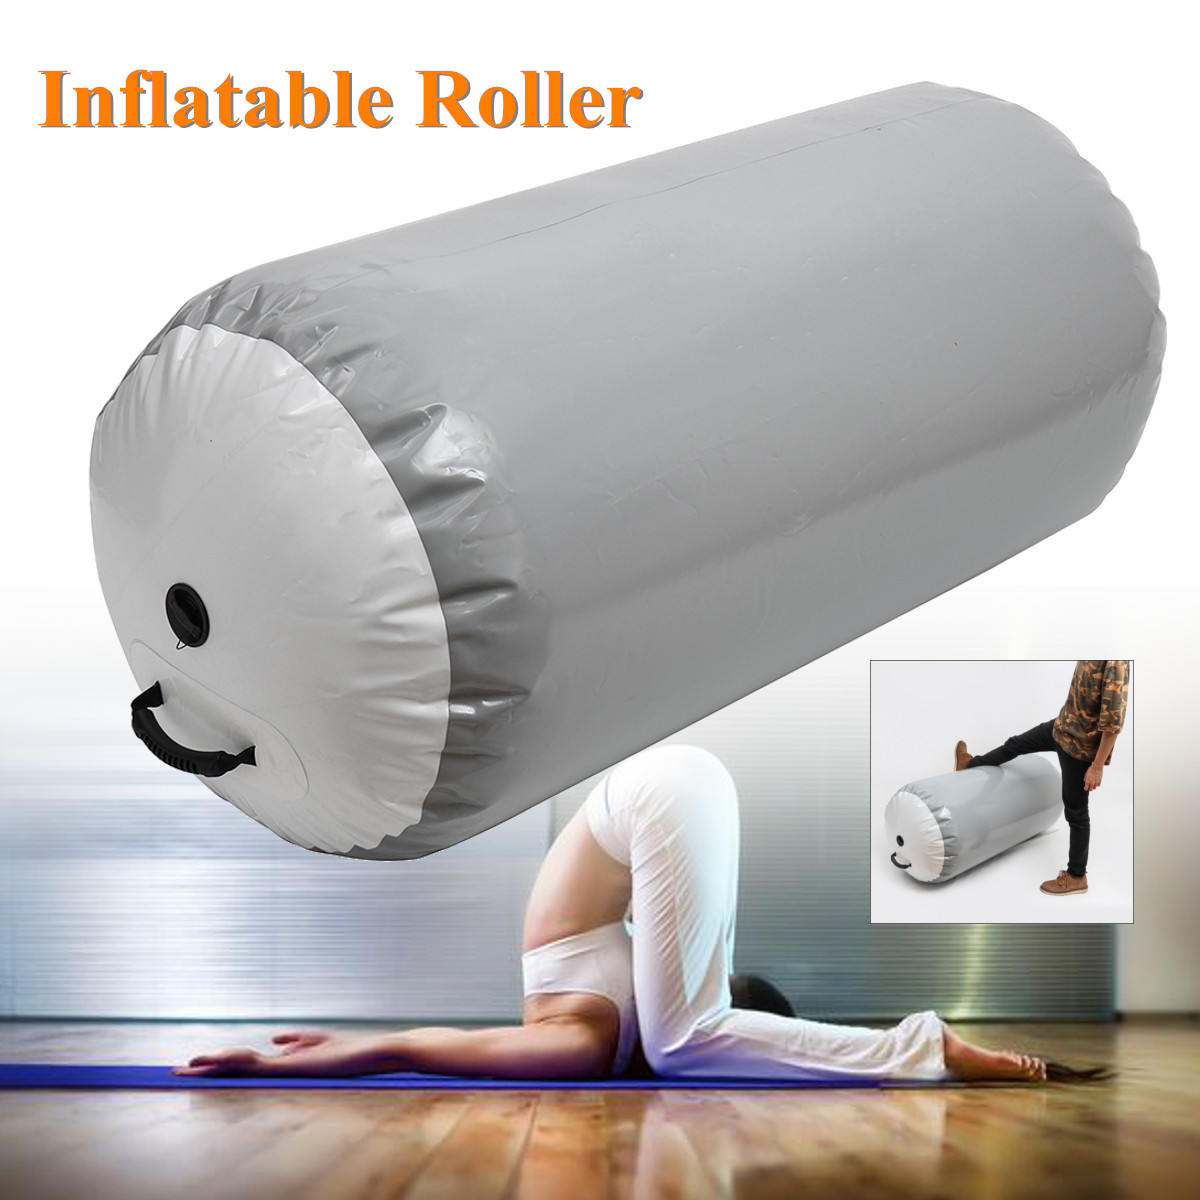 Inflatable Roller Gymnastic Air Rolls Airtrack Tumble Exercise Gym Air Barrel for Training Equipment